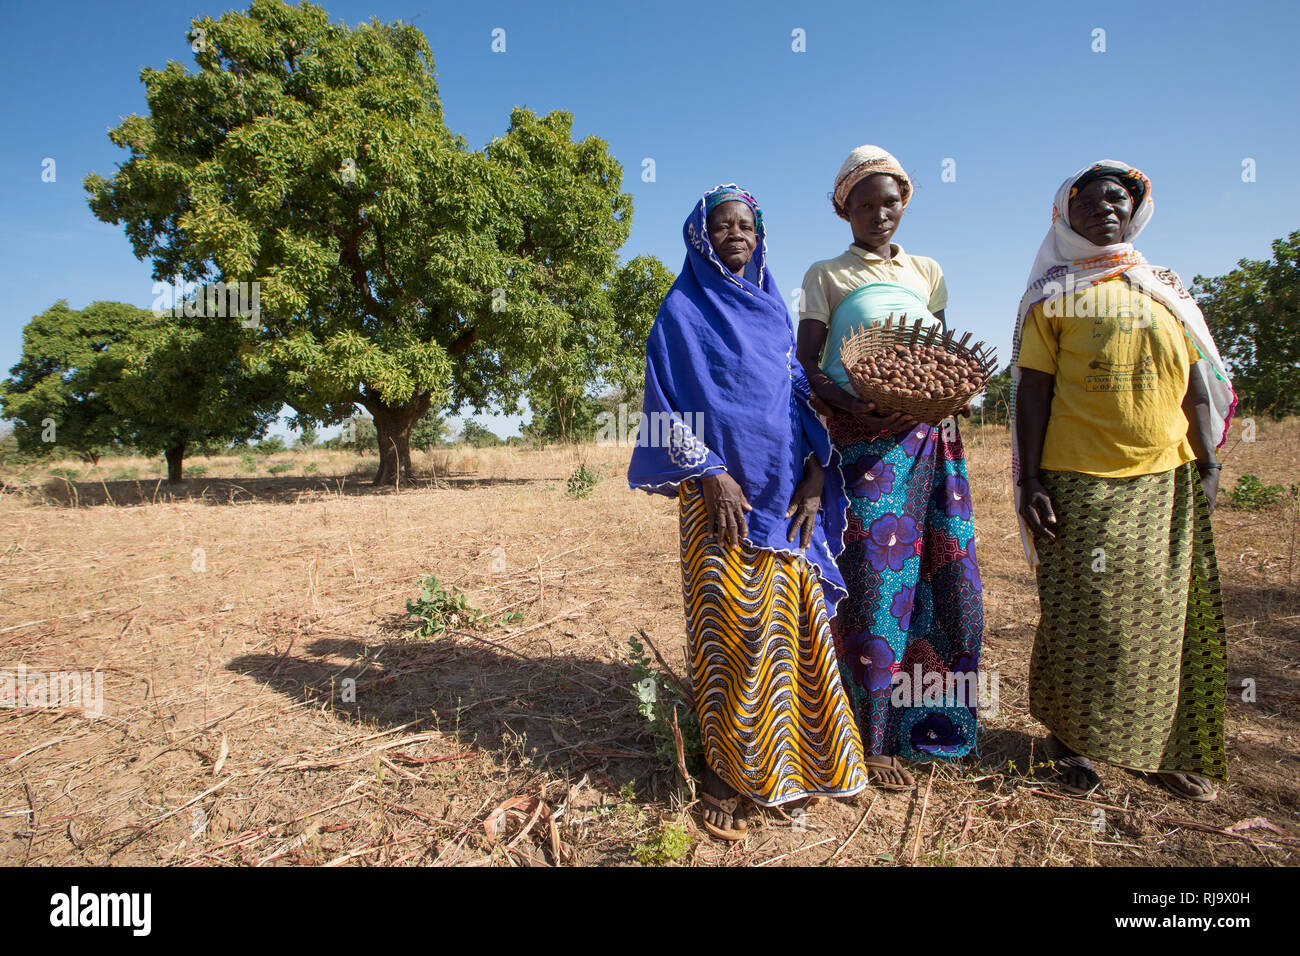 Yarsi village, Yako, 1st December 2016; (Left  to Right) Rasmata Simpone, 60, Leontine Ouedraogo, 31, and Bintou Sankana, 50, all members of the Village Tree Enterprise Shea Group, with shea nuts in front of a shea tree where they collect a large quantity of shea nuts. Stock Photo